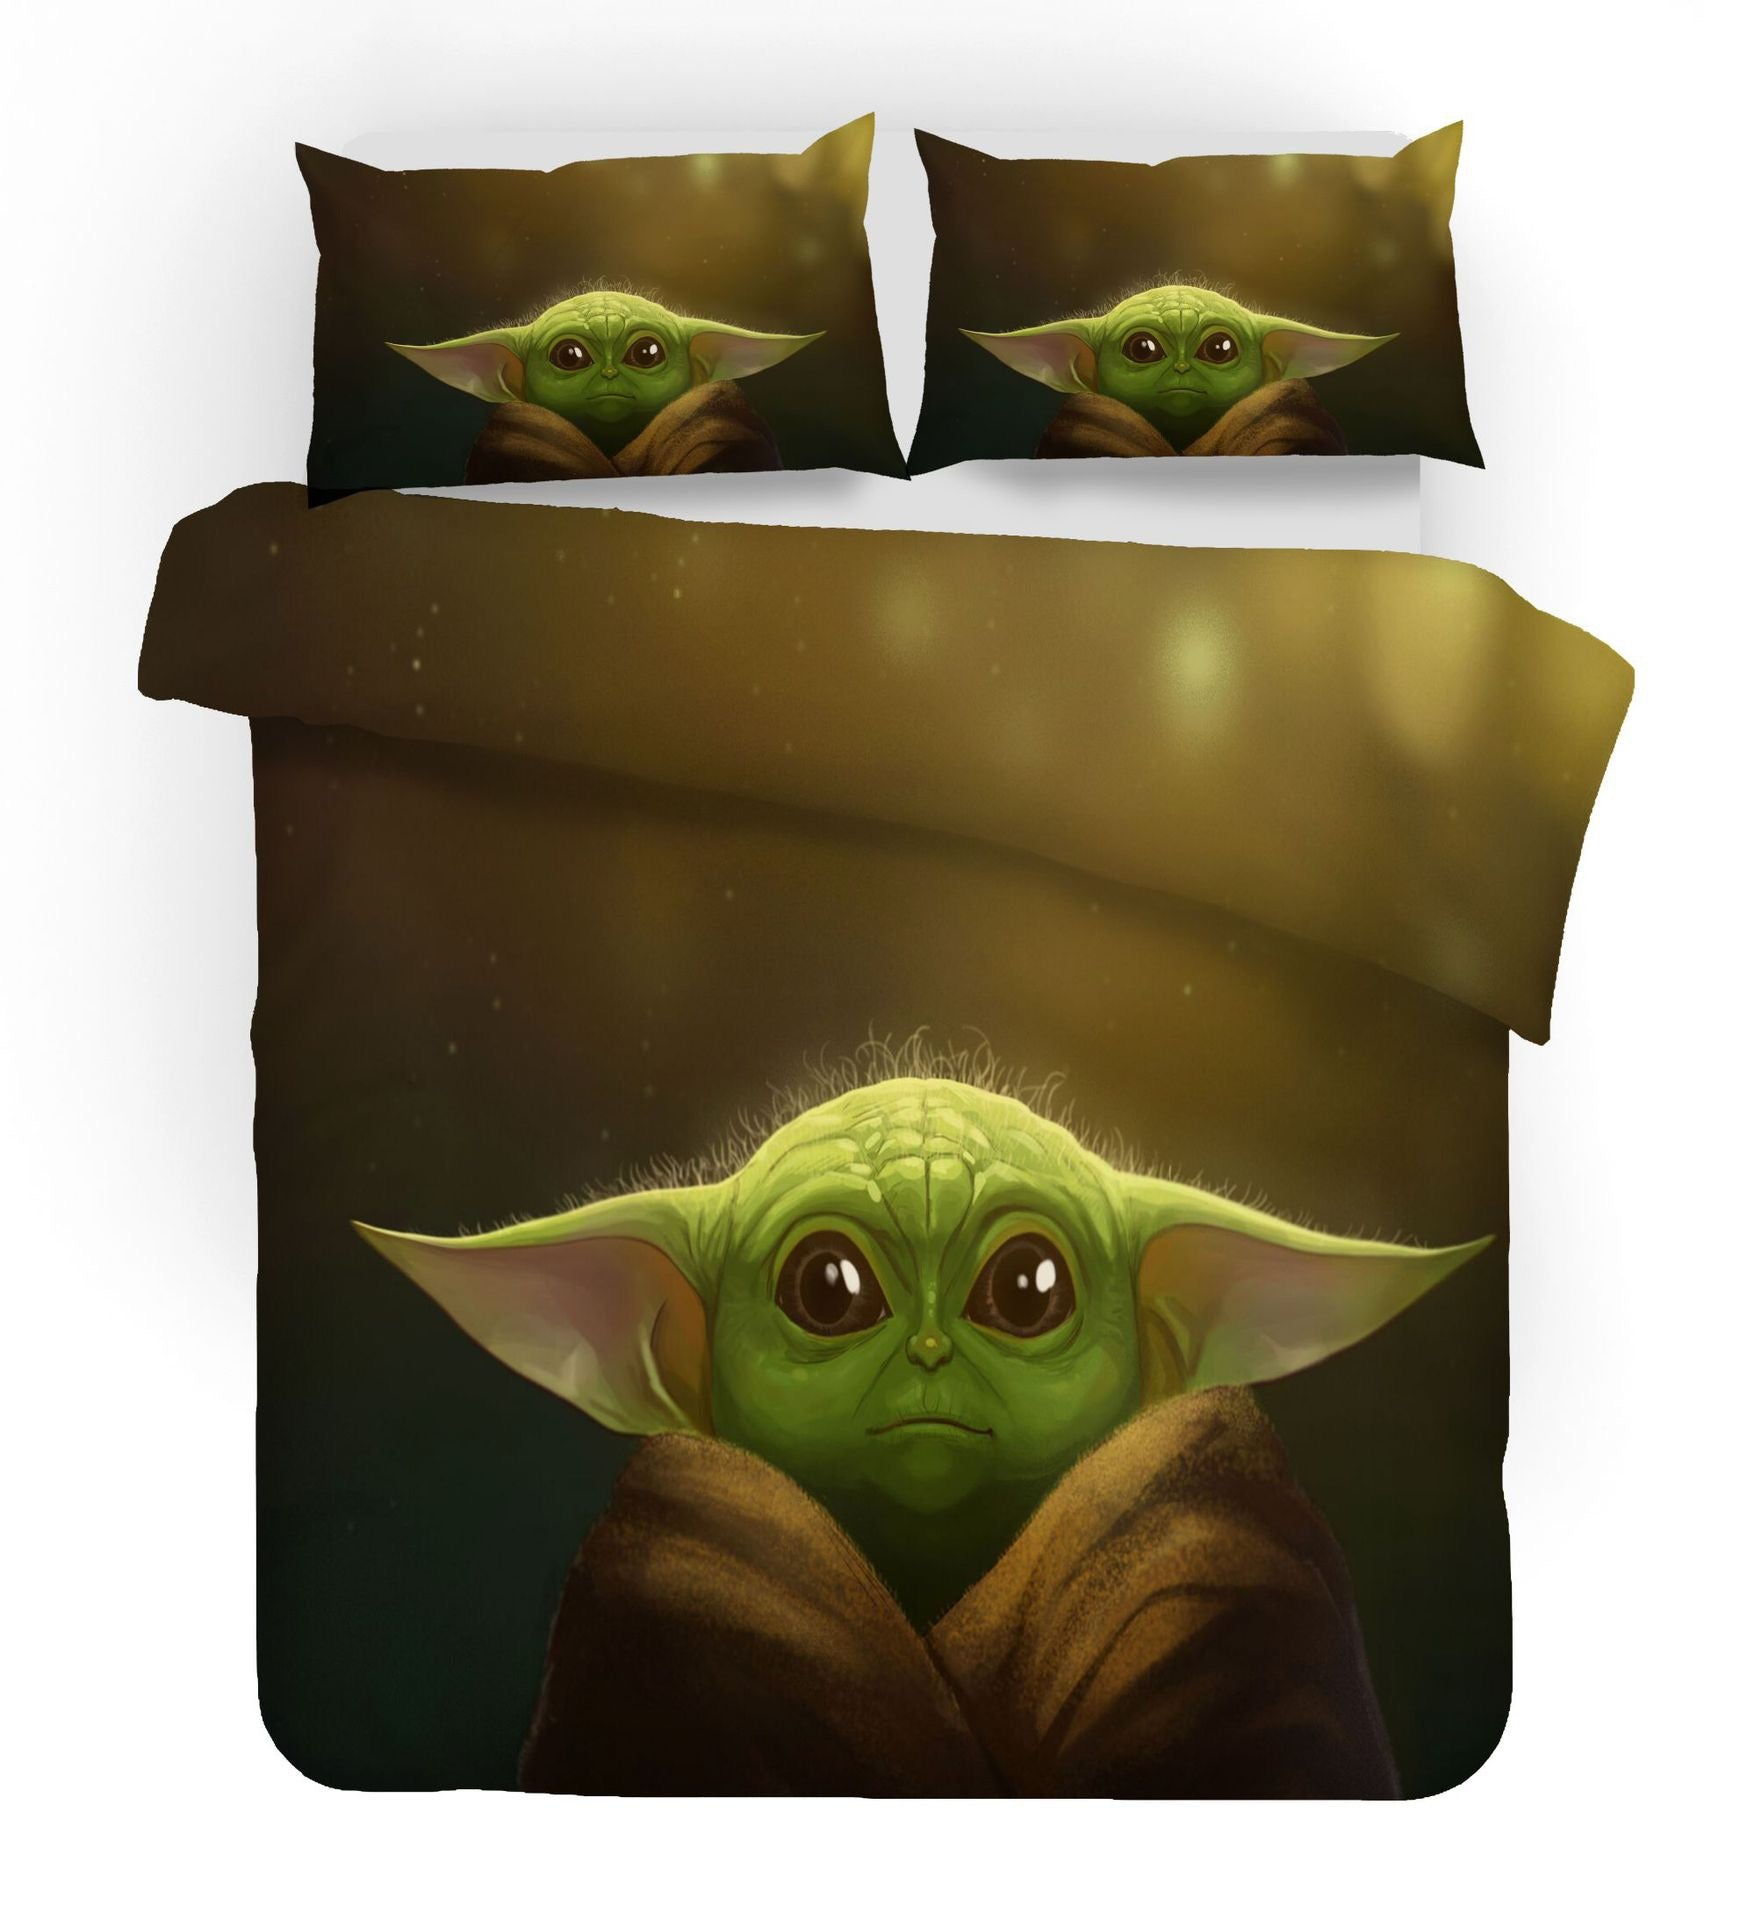 Star Wars The Mandalorian Baby Yoda 12 Duvet Cover Quilt Cover Pillow Bedding Picky